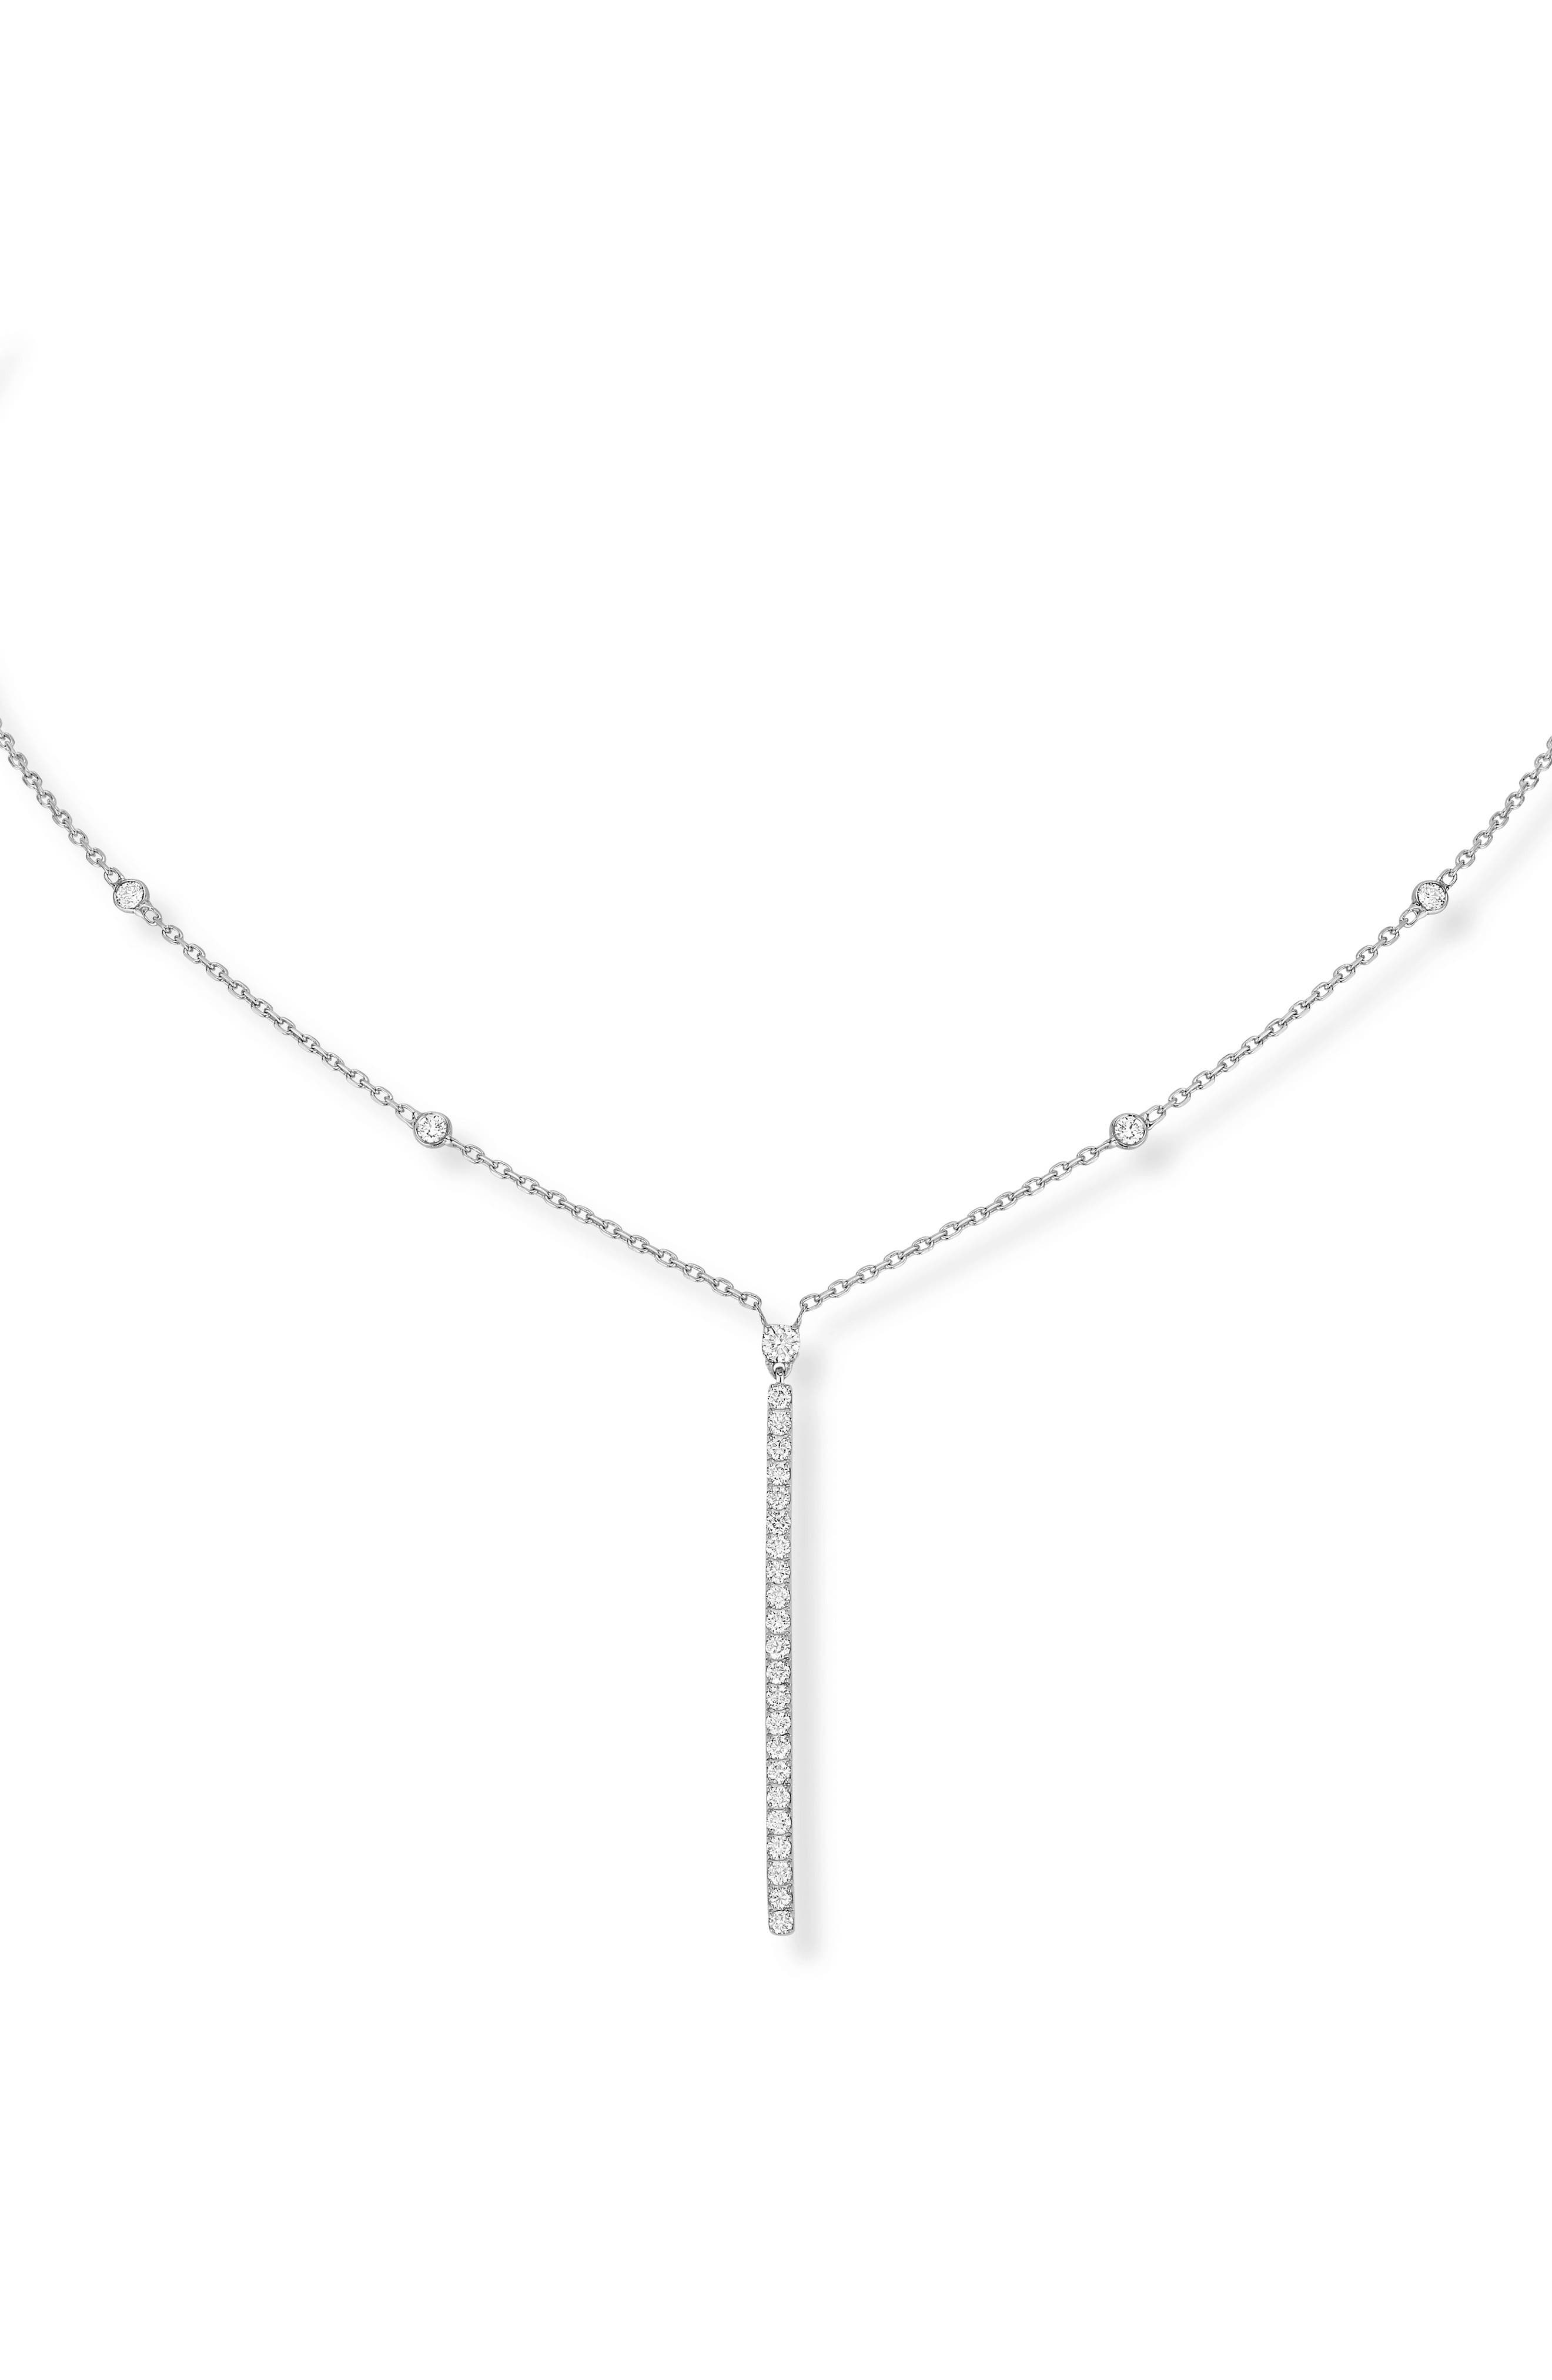 Gatsby Diamond Collar Necklace,                         Main,                         color, White Gold